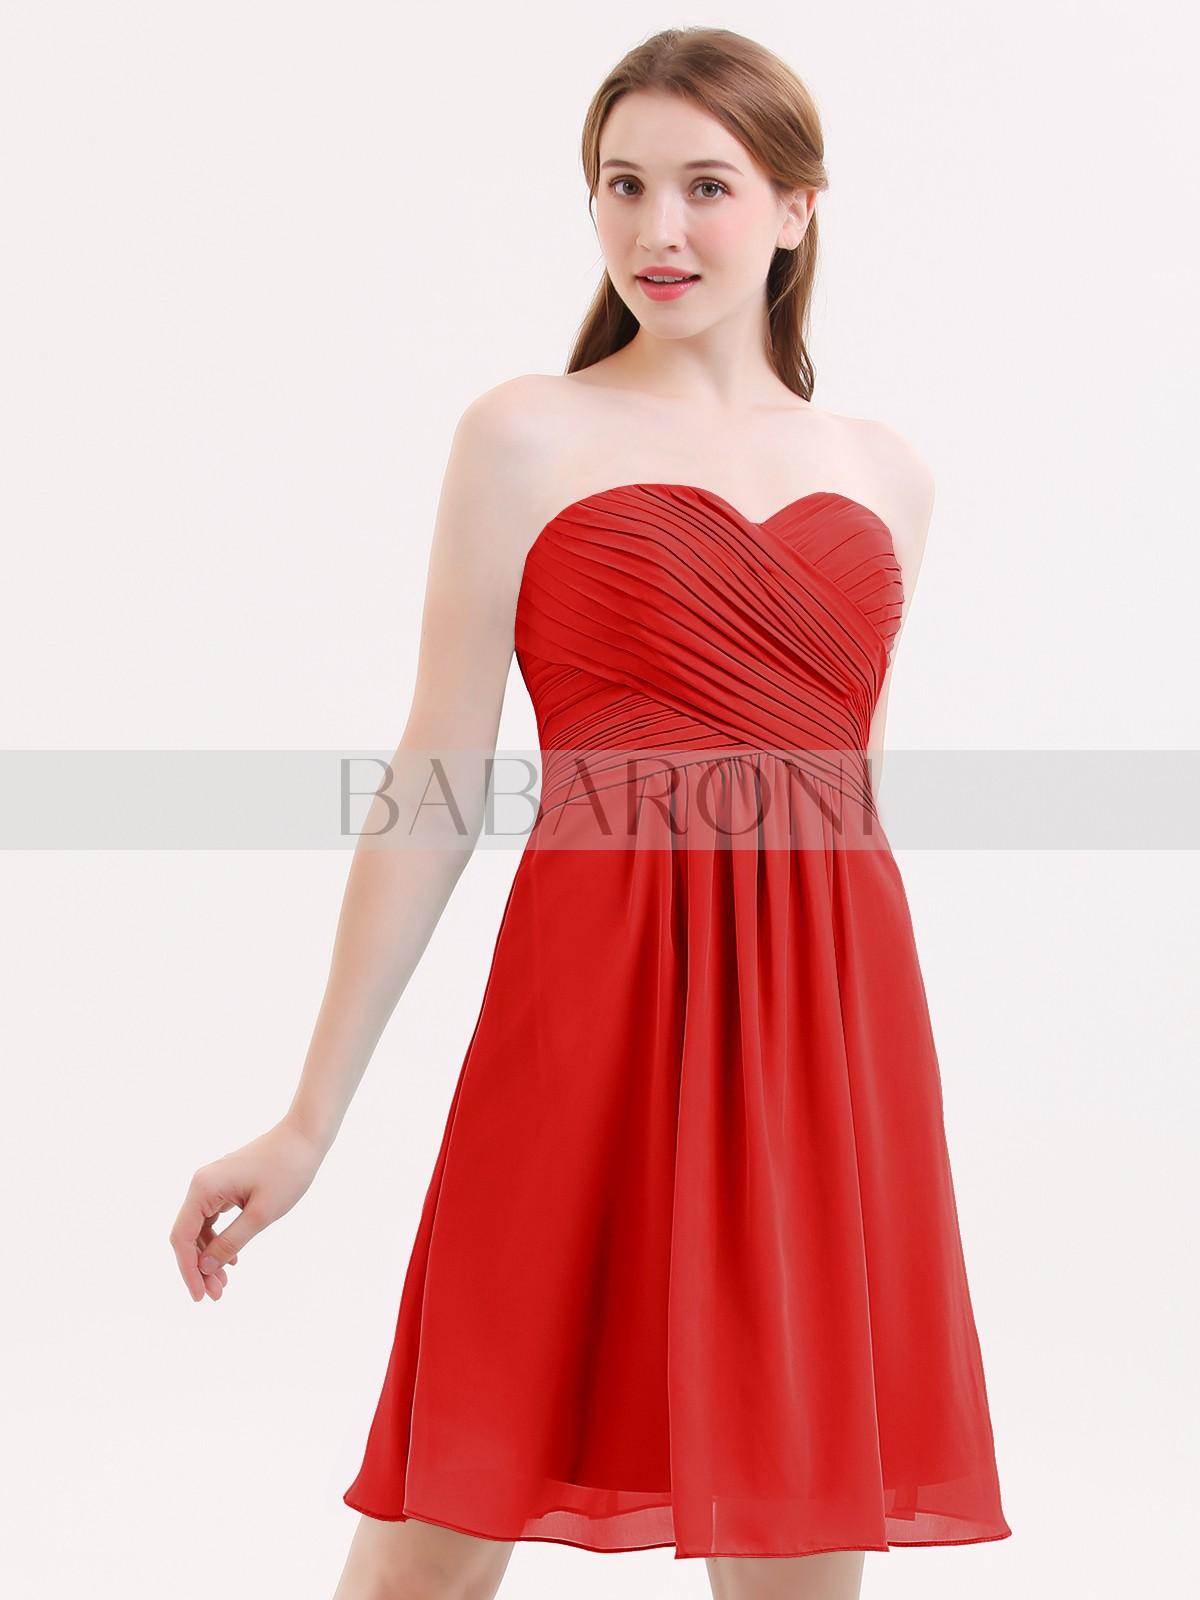 316cde8d302 Red Samantha Short Strapless Bridesmaid Dress with Sweetheart